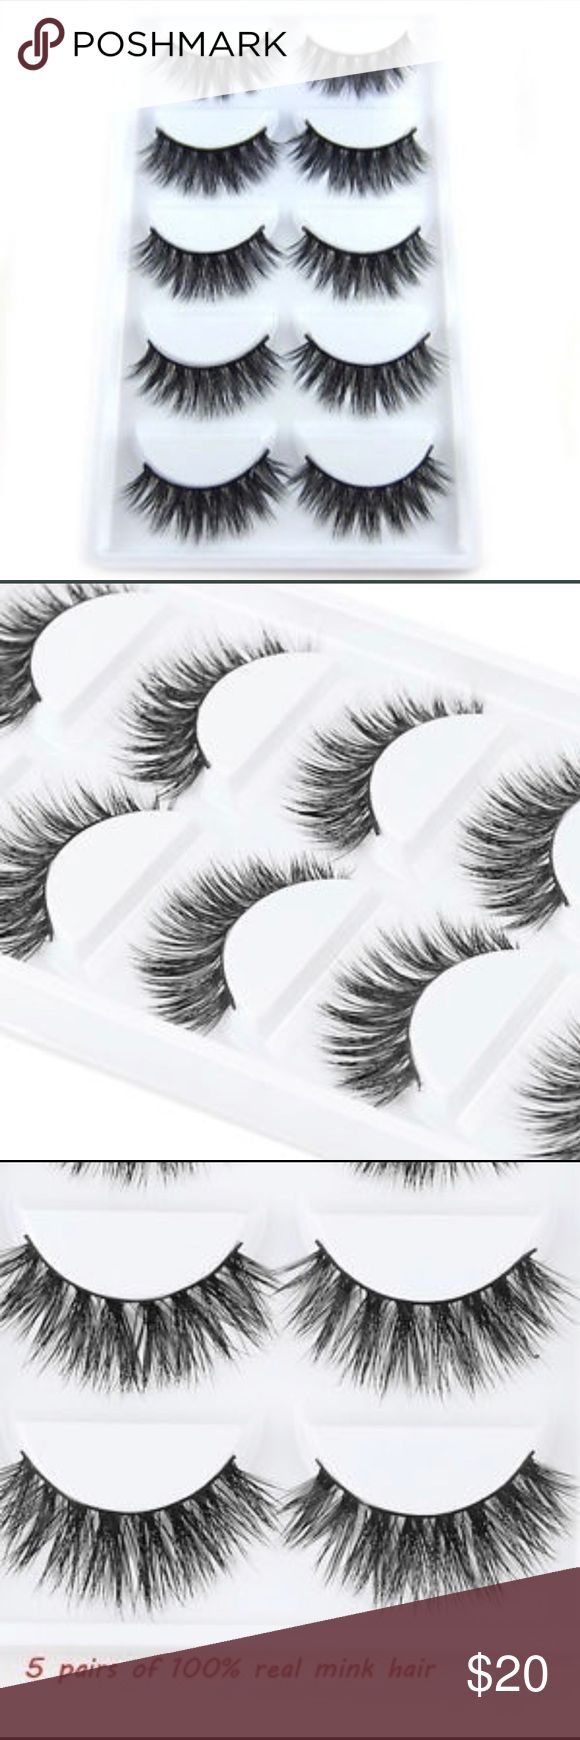 💕100% REAL MINK EYELASHES 5pcs Specifications: The False eyelashes are Specialized made by hand entirely, high quality synthetic fibers  and designed to look natural and feel great for everyday use  100% brand New Very soft and comfortable to wear Suitable for Party or Professional Make up Easy to use, can make your eyes look bright and attractive They can be removed by eye makeup remover Can be reused when applied with care Makeup False Eyelashes